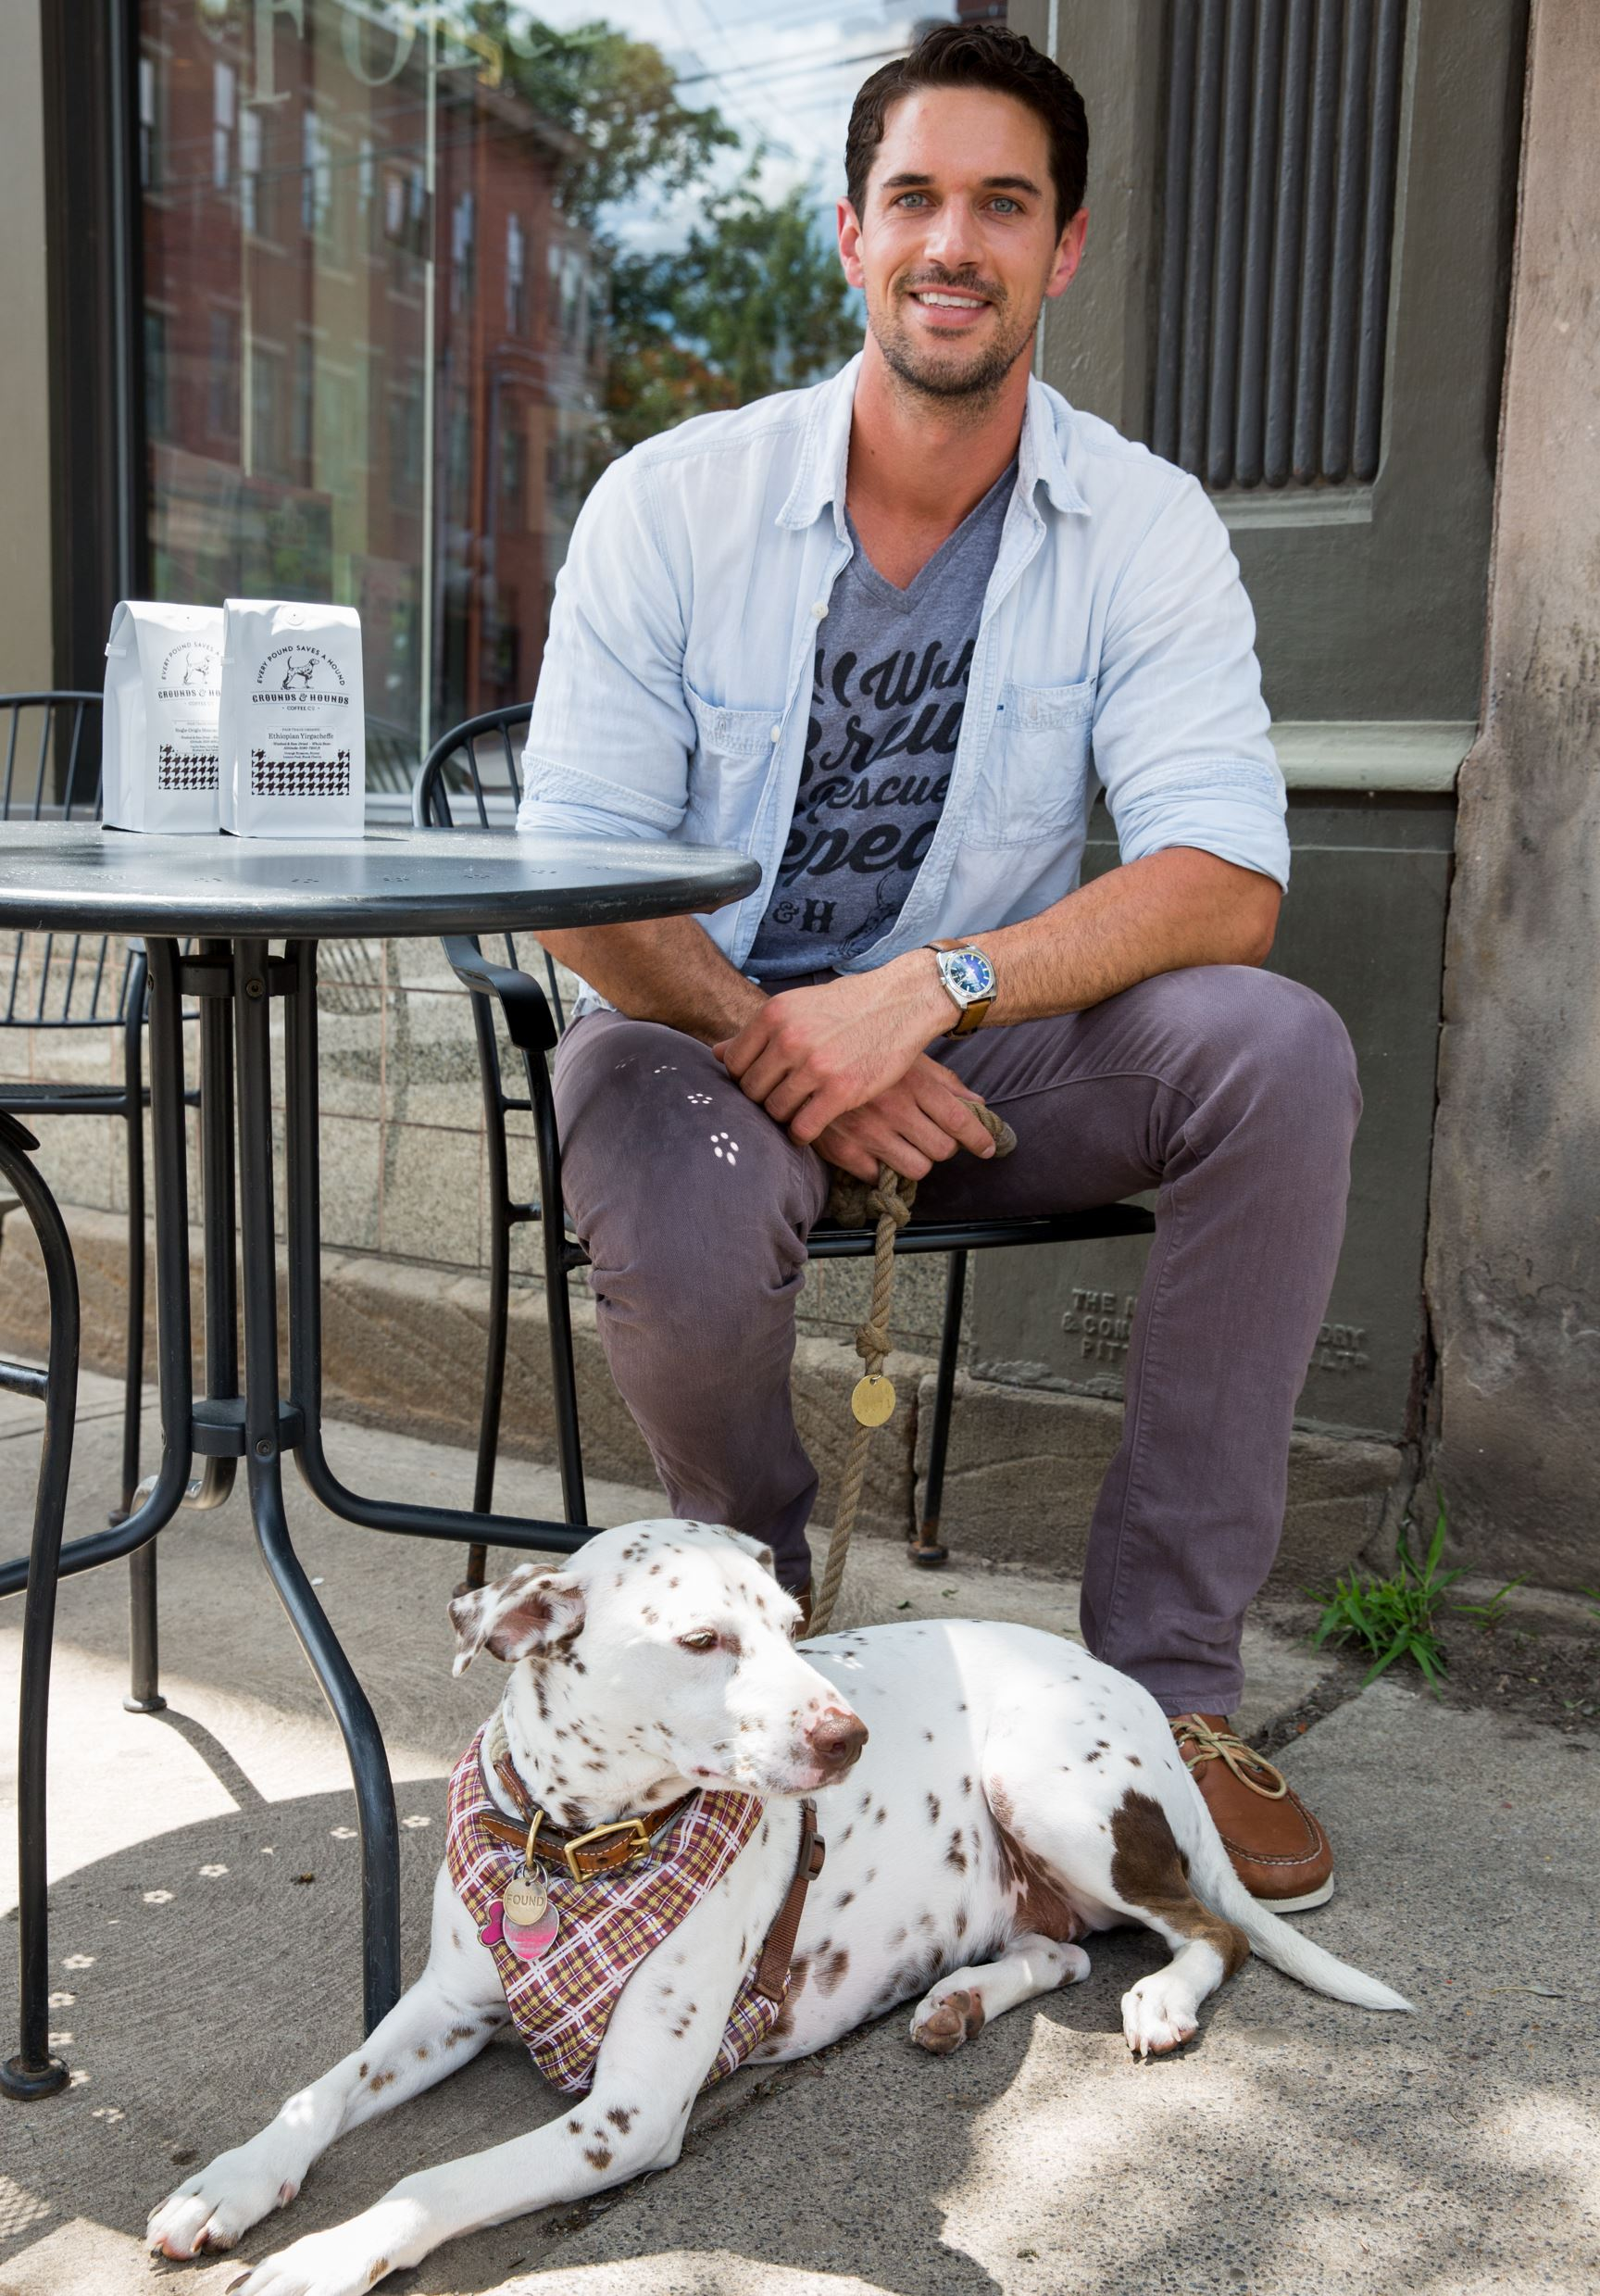 20170629adGrounds-Hounds-01 Jordan Karcher rescued Molly five years ago in California. Now she is the symbol and mascot of his Hounds & Grounds Coffee Co. in Lawrenceville.